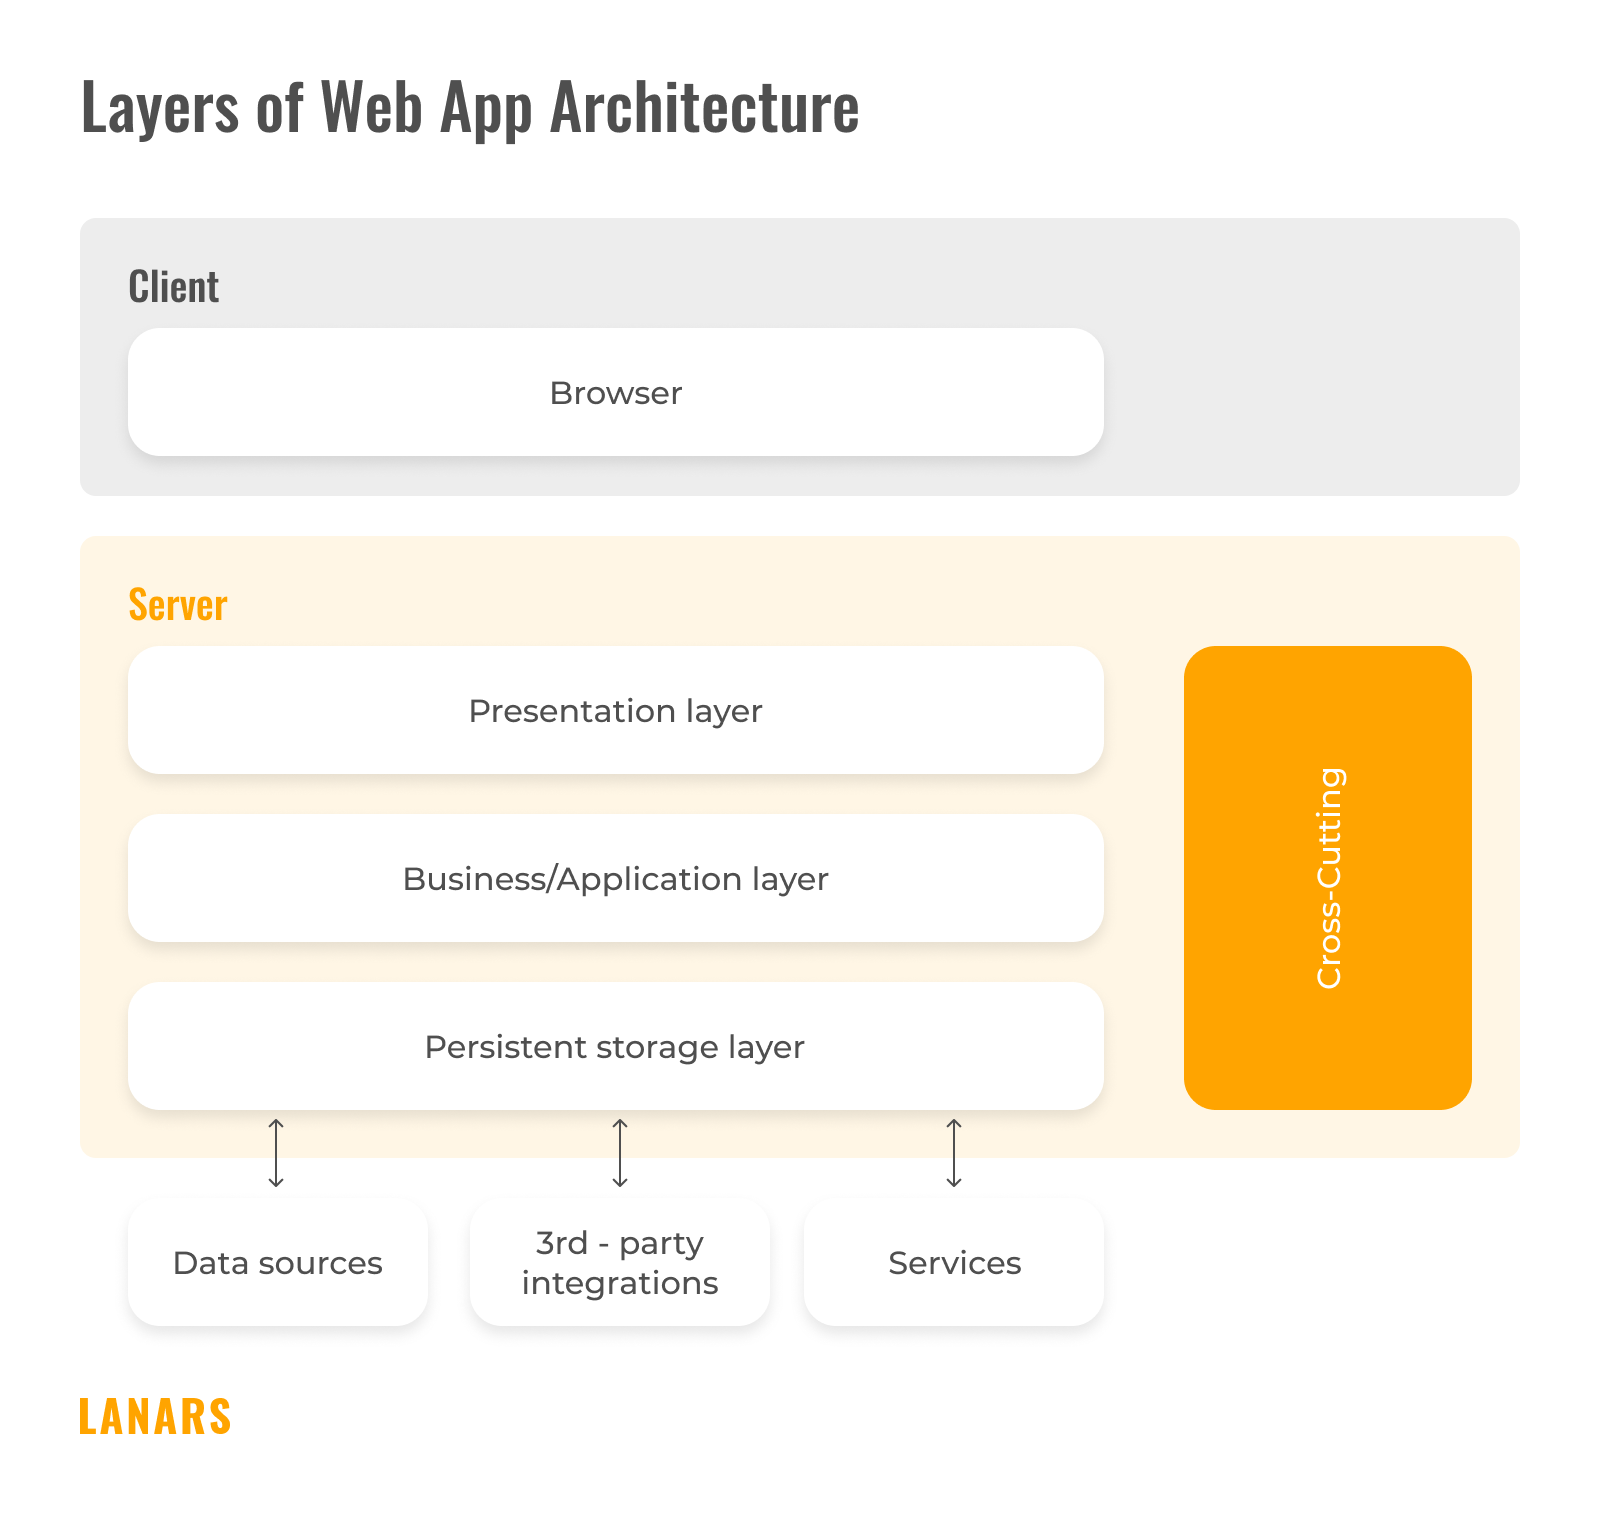 Layers of Web App Architecture